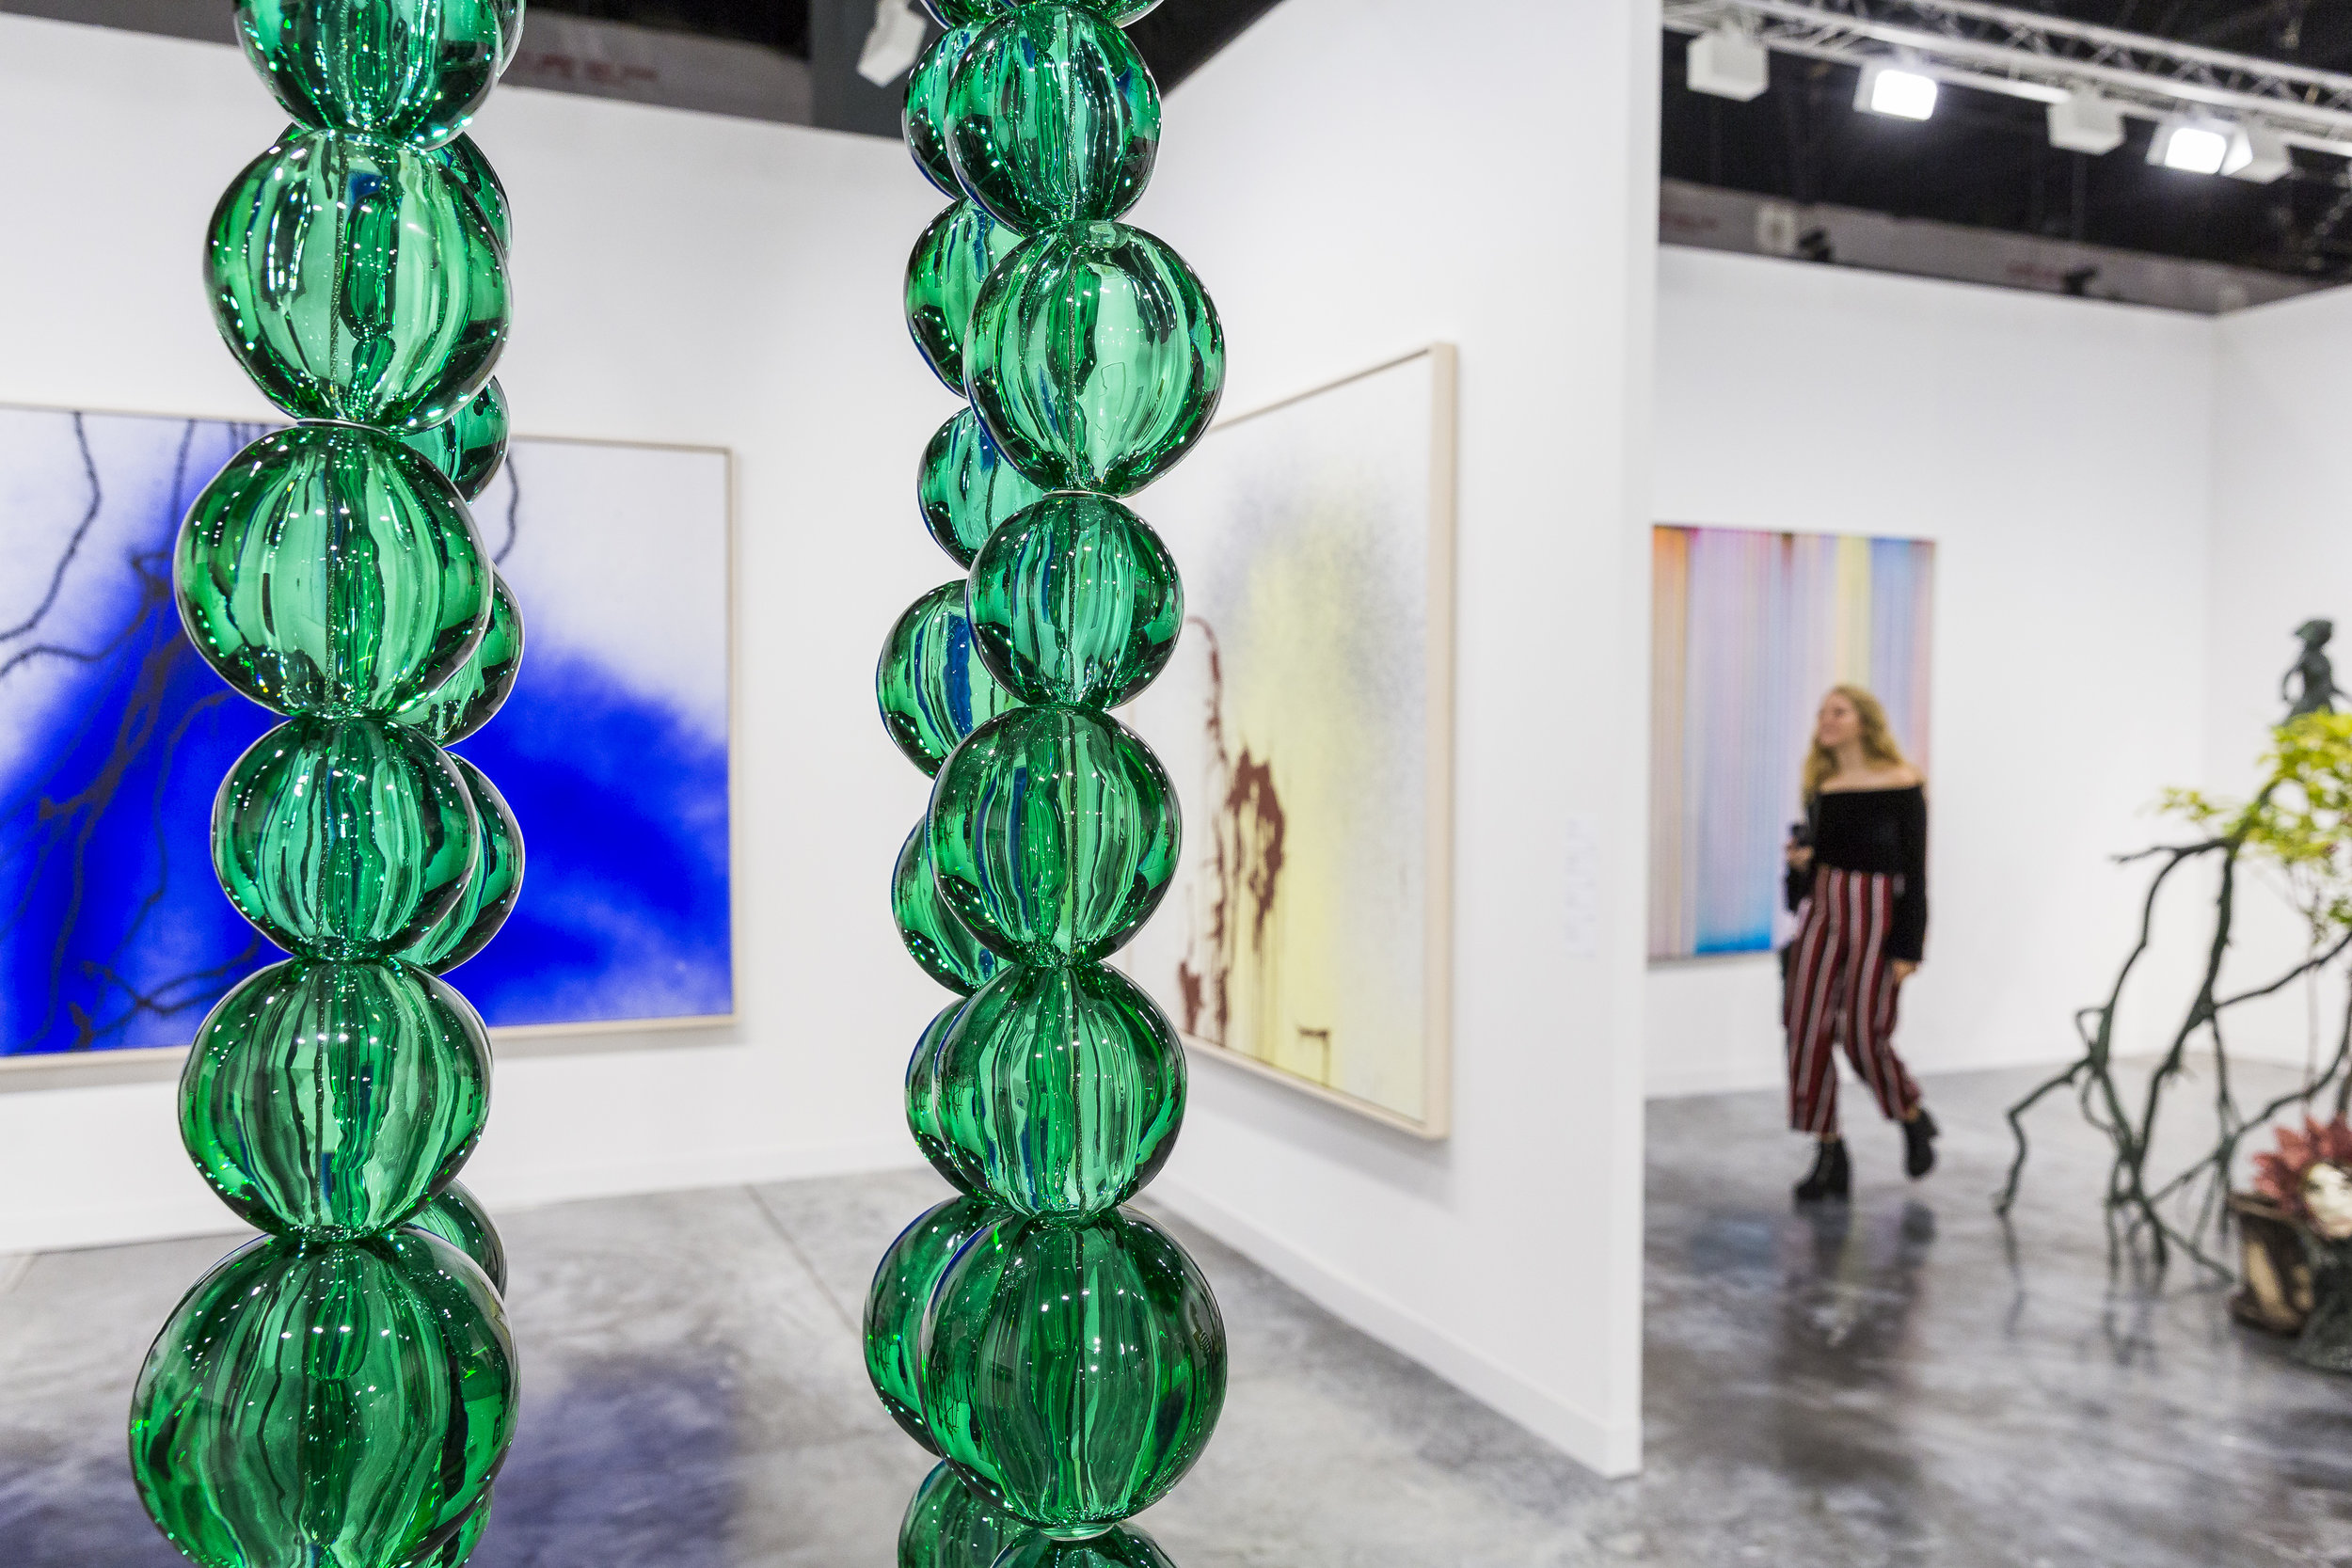 New York's Perrotin Gallery at Art Basel Miami Beach